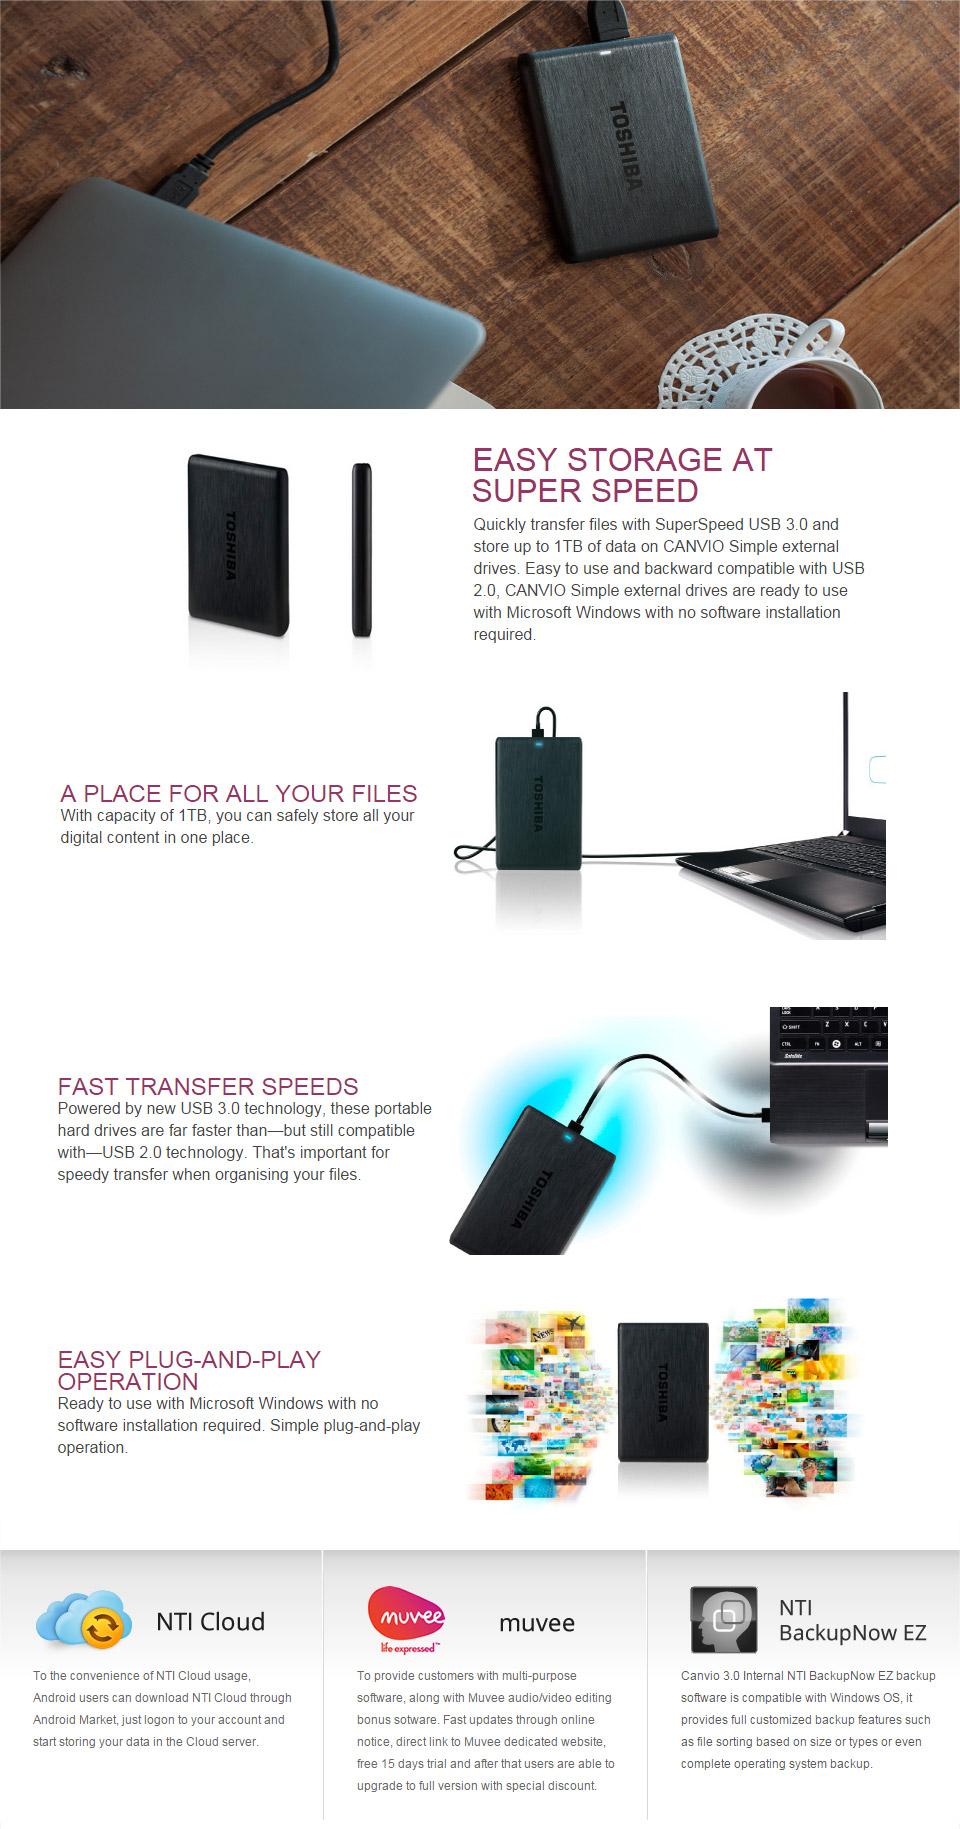 Toshiba Canvio Simple Usb 30 External Hdd 1tb Hdtp110ak3aa Pc Thosiba Basic Hardisk Exsternal The Hard Drive Easy To Use And Backward Compatible With 20 Drives Are Ready